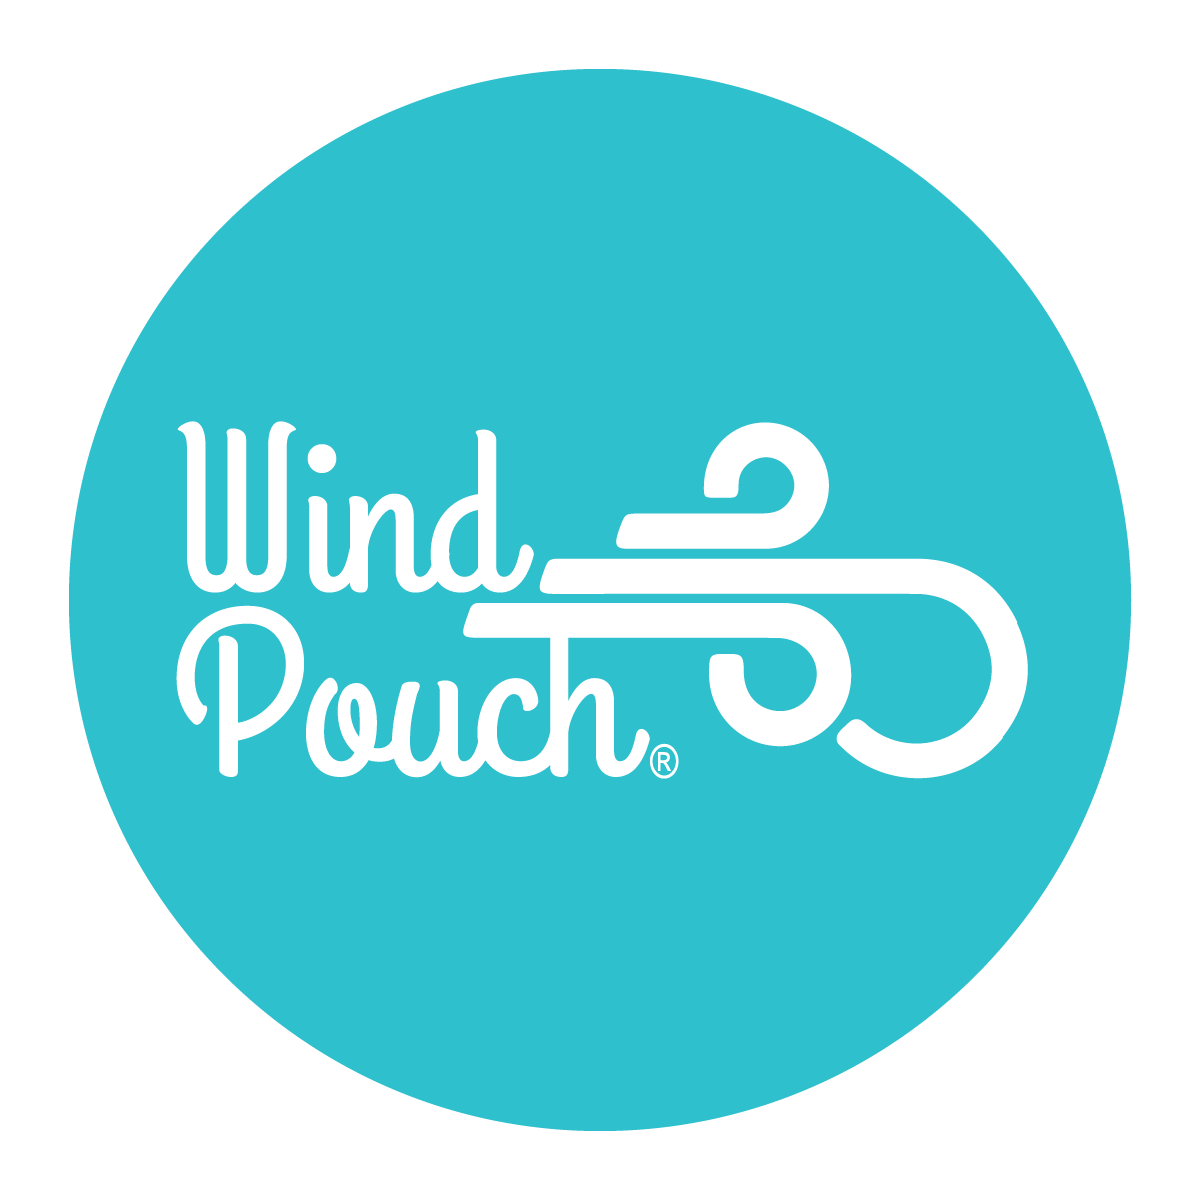 WindPouch